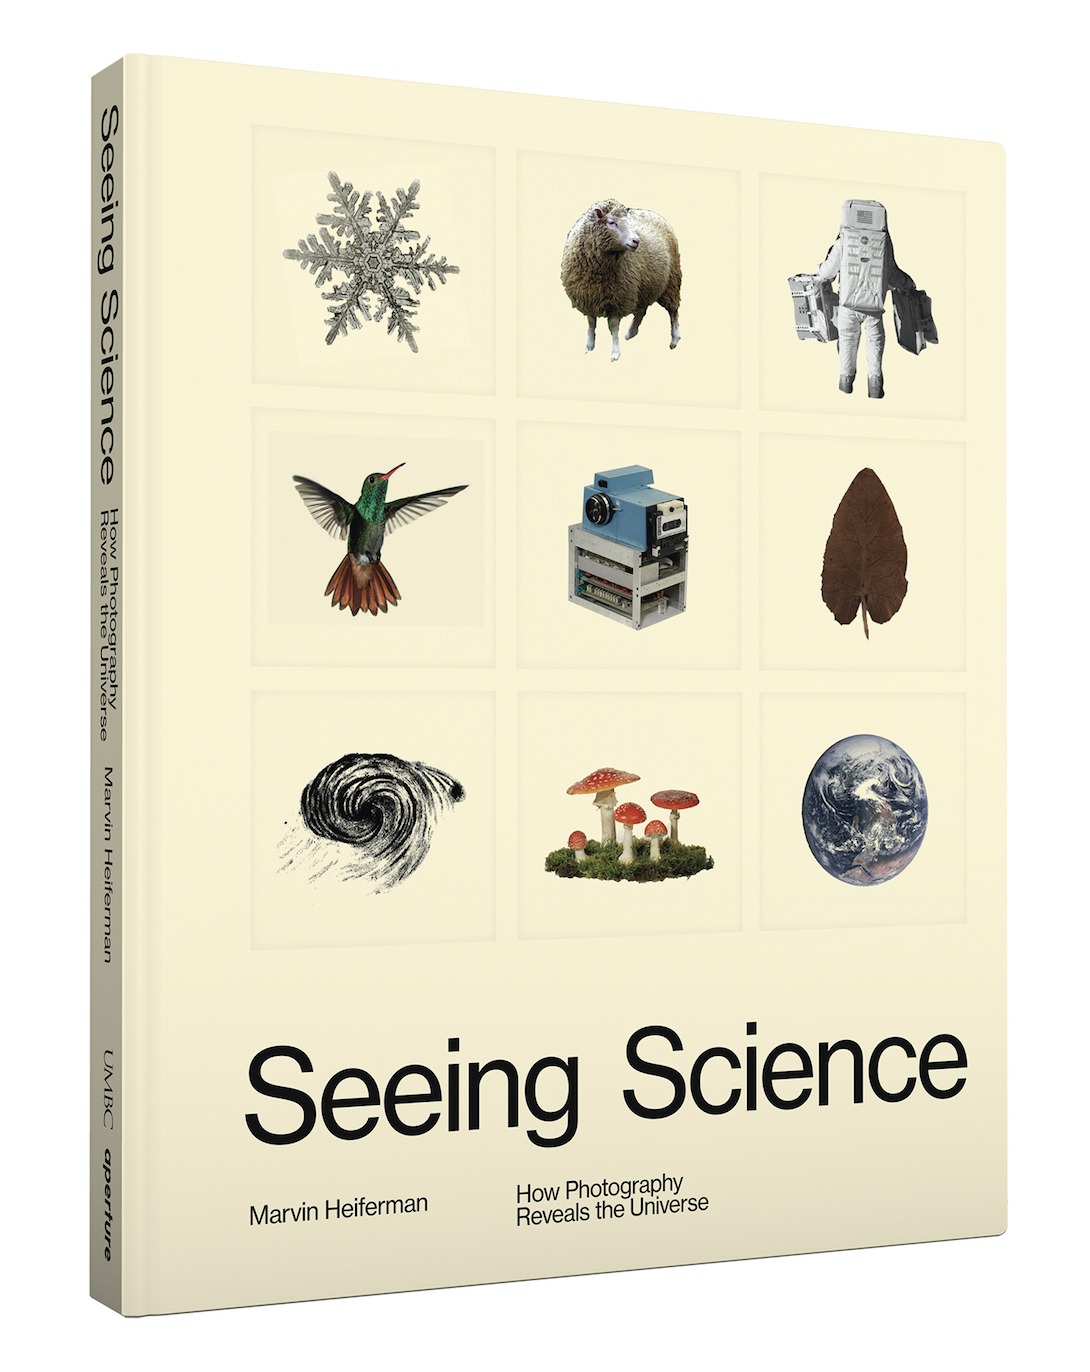 SEEING SCIENCE , by Marvin Heiferman, published by Aperture